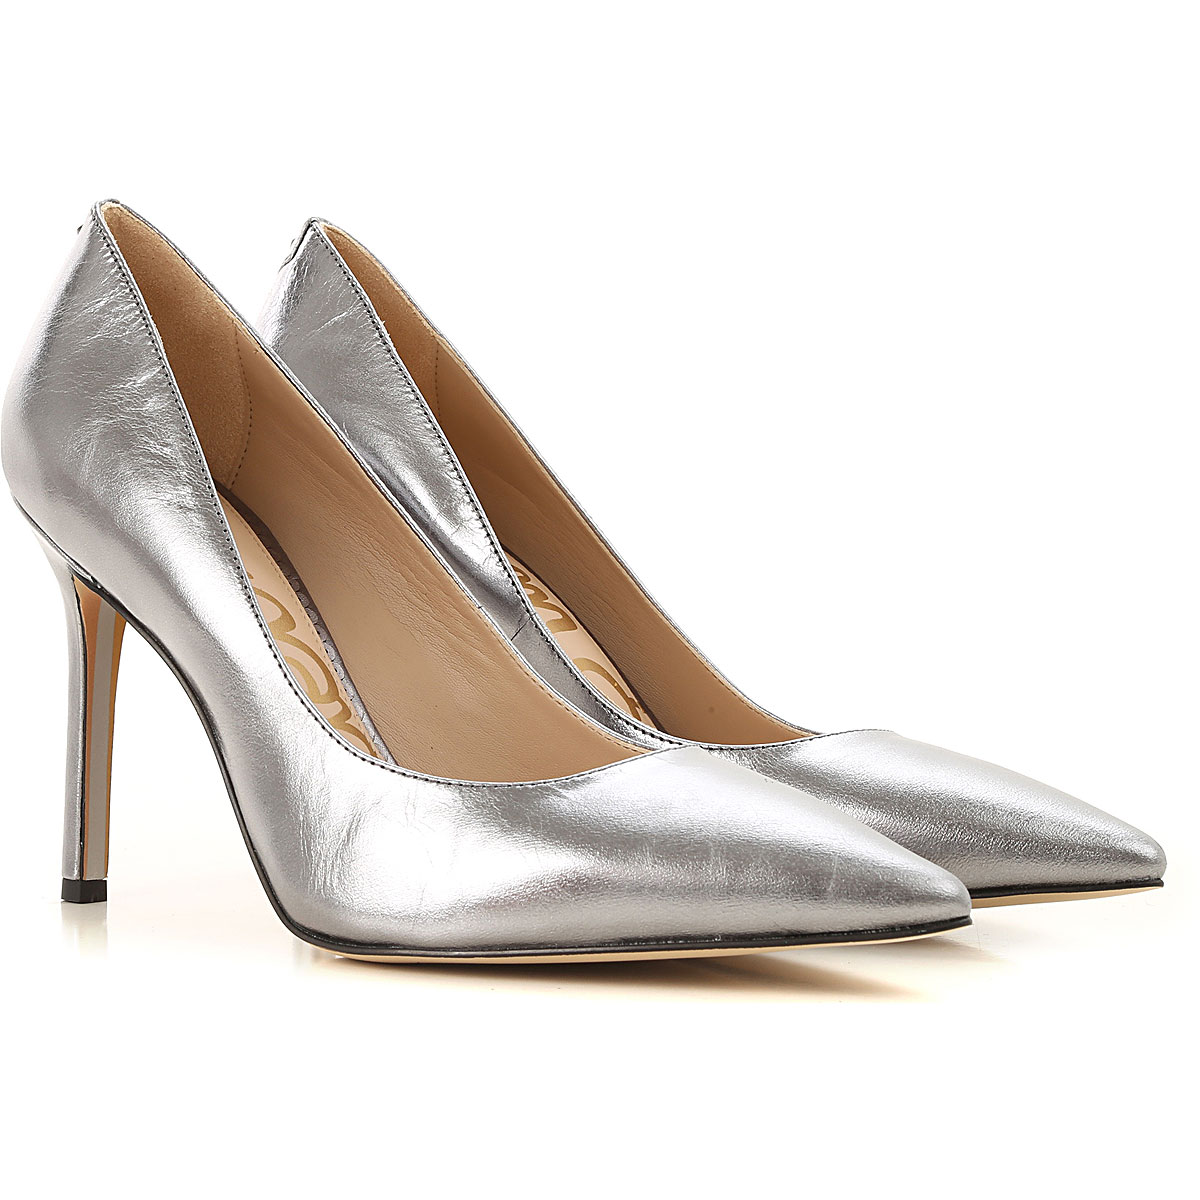 Sam Edelman Pumps & High Heels for Women On Sale, Metallic Anthracite, Leather, 2019, 10 8.5 9